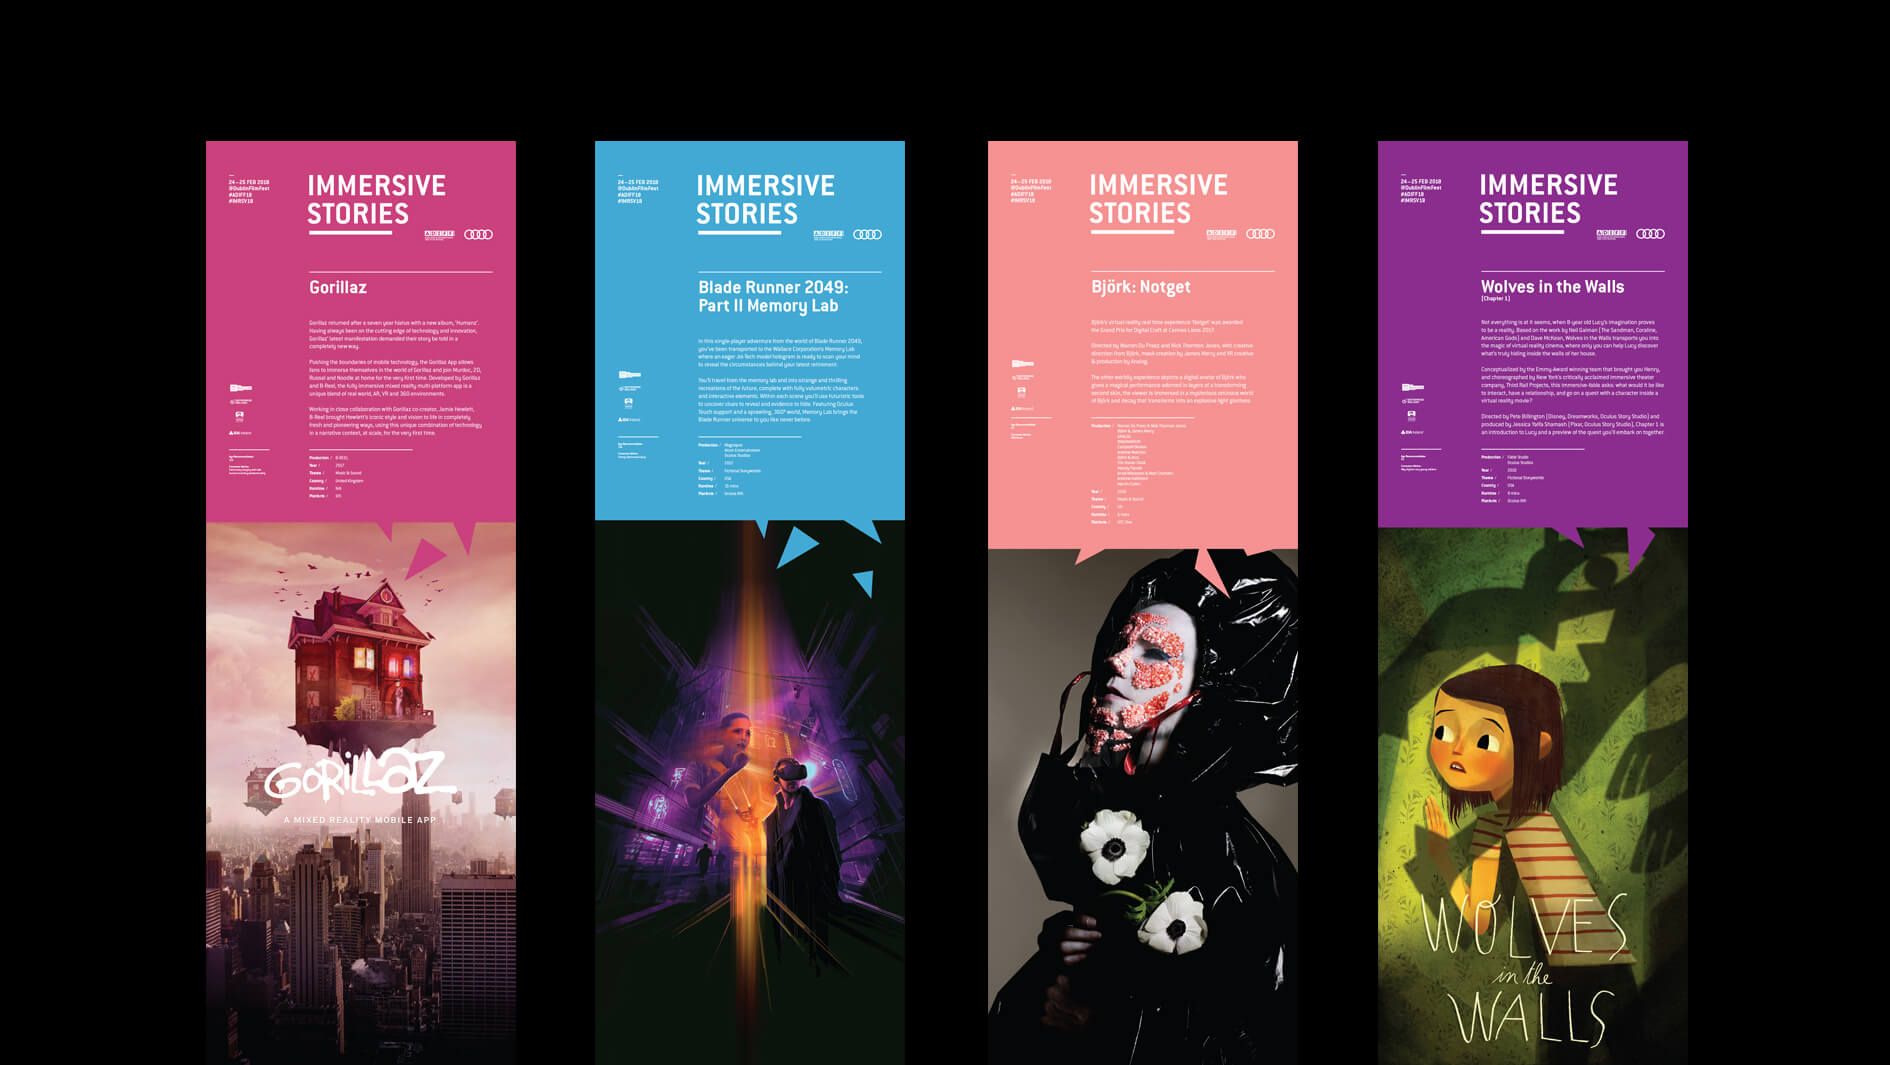 DIFF / Immersive Stories posters